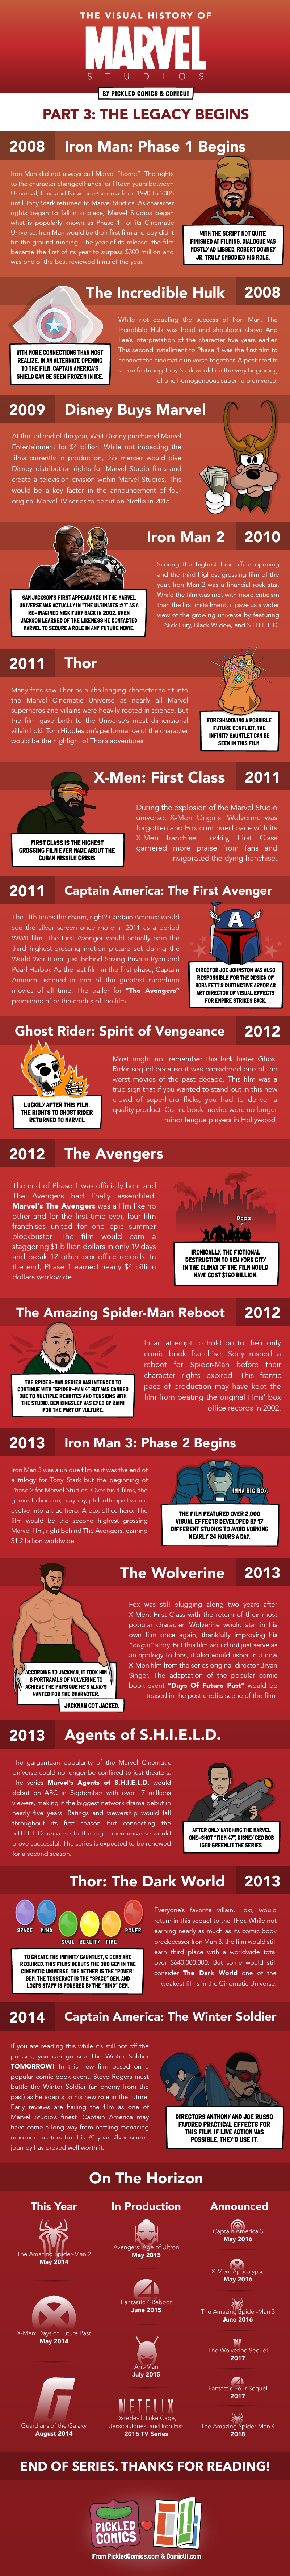 The Visual History Of Marvel Studios. Part 3 starts in 2008 with Phase 1 and Iron Man, and ends in 2014 with the anticipated release of The Winter Solider.